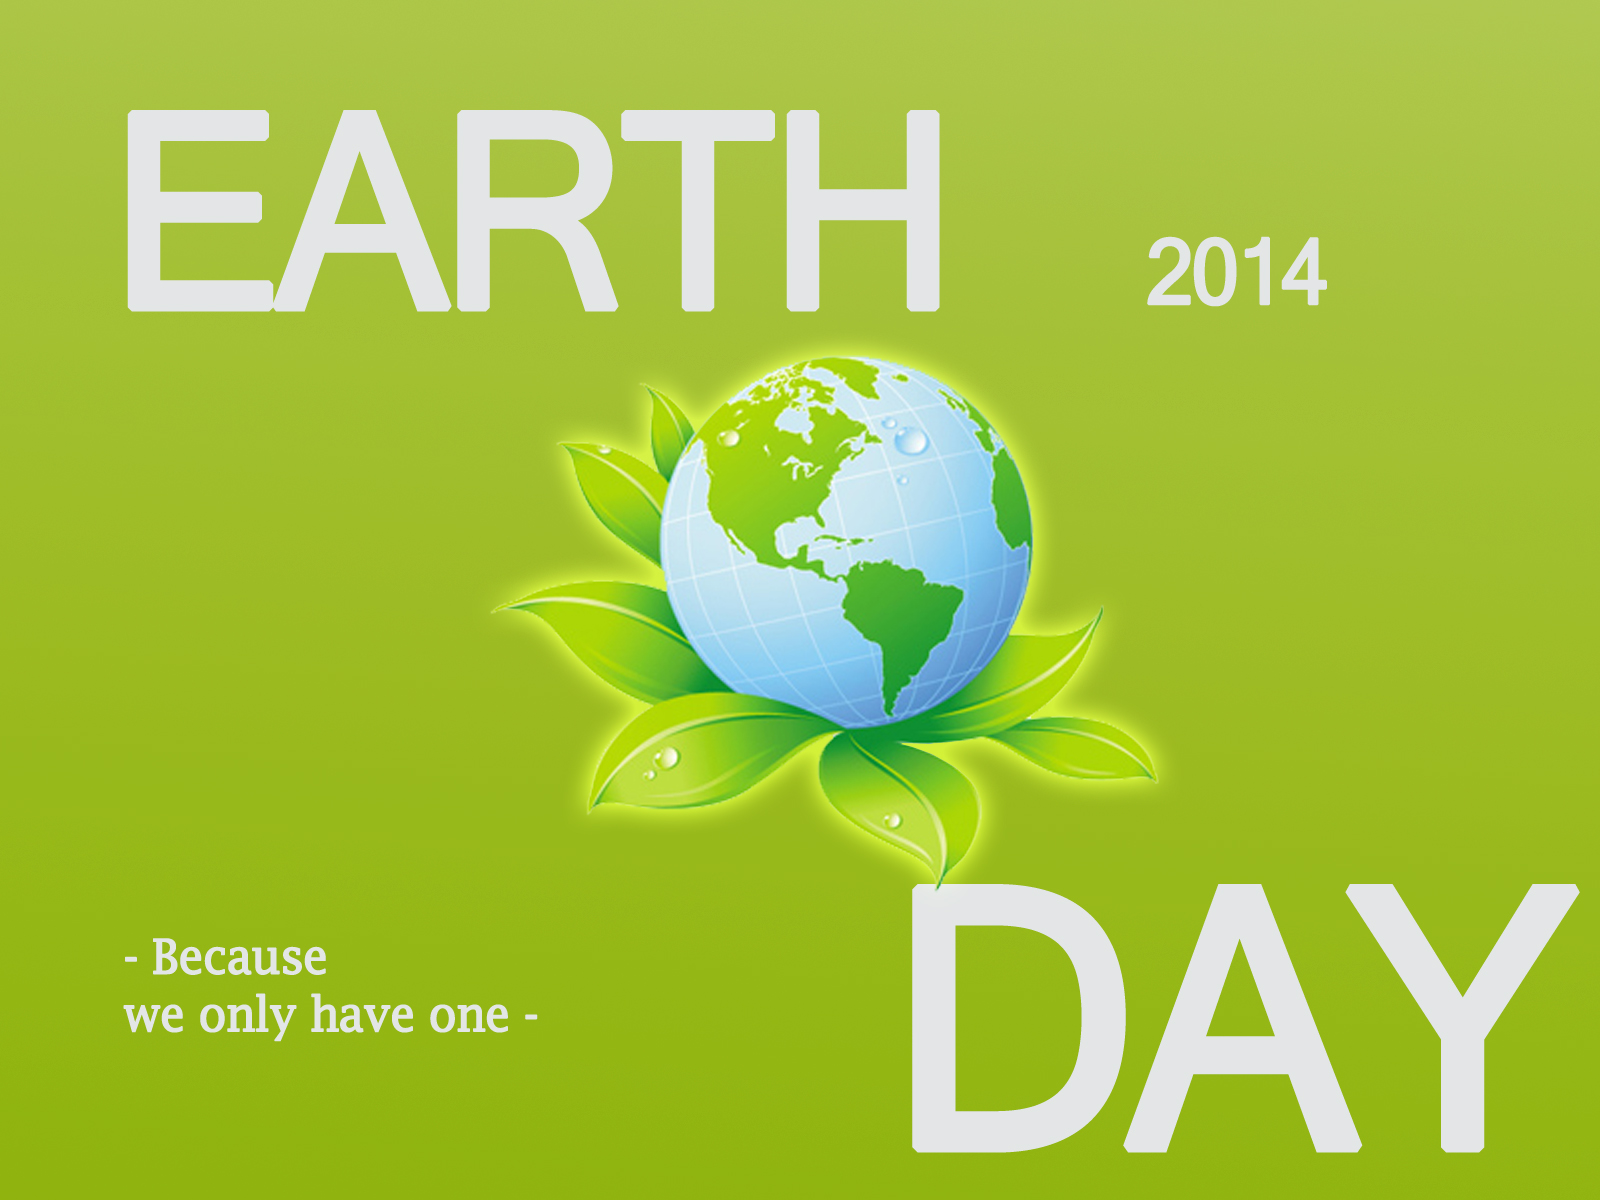 World Earth Day 2014 Wallpaper And Windows 8 Theme 1600x1200